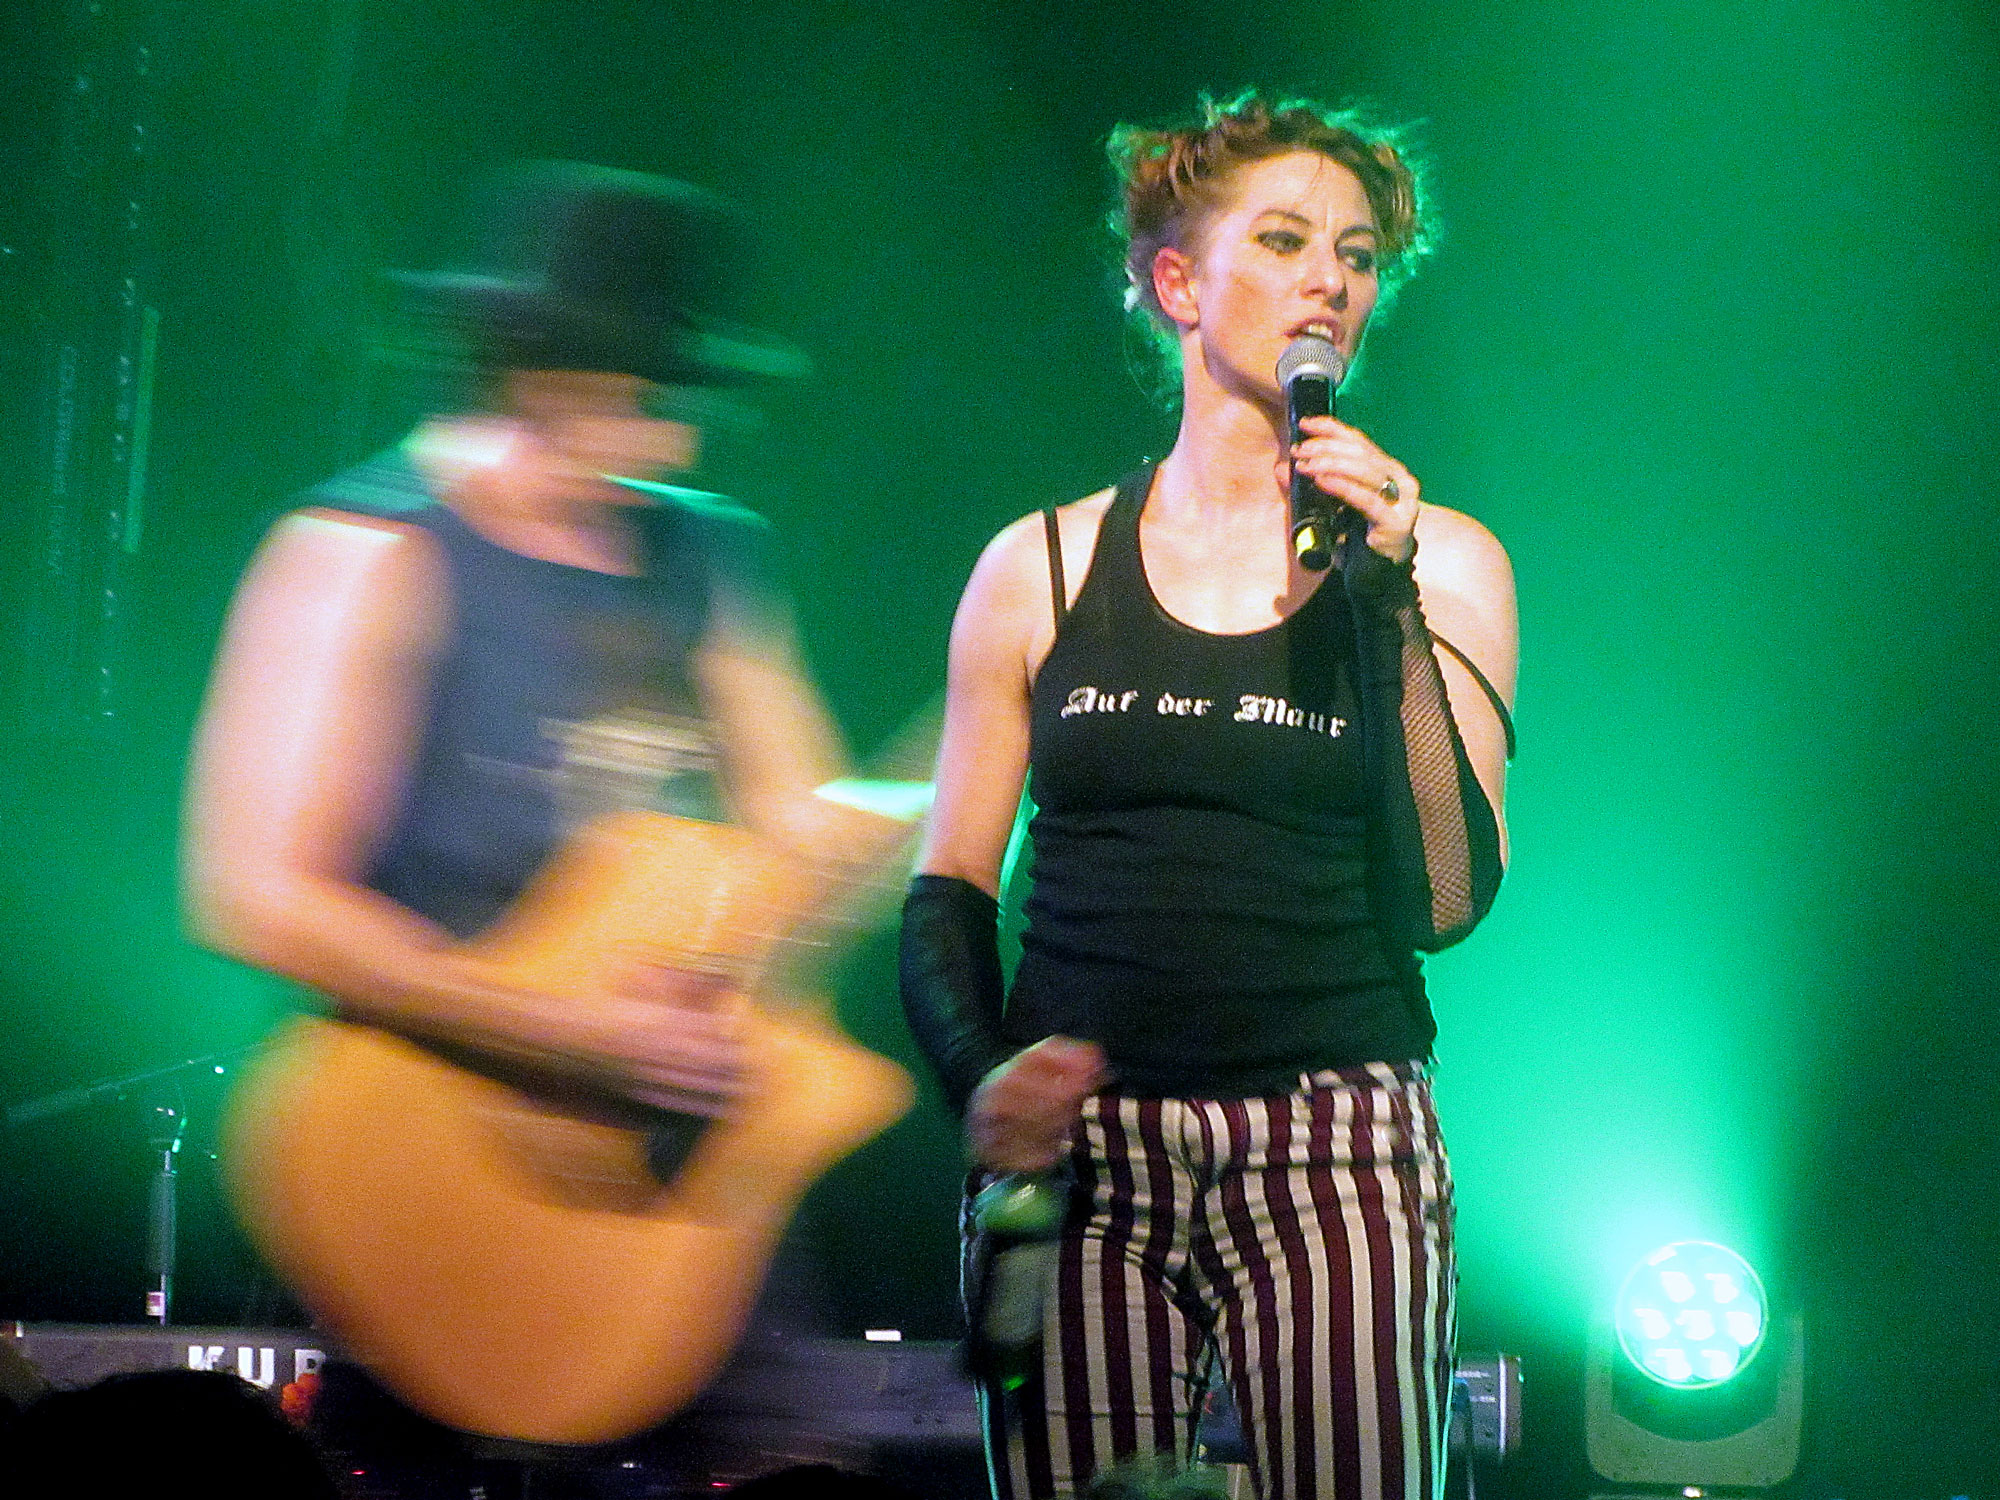 On a green-lit stage, stands a woman dressed in a black vest and stripy trousers. In one hand she holds a microphone, in the other a bottle of beer. Behind her, the blurred figure of a man playing acoustic guitar. He wears a bowler hat.